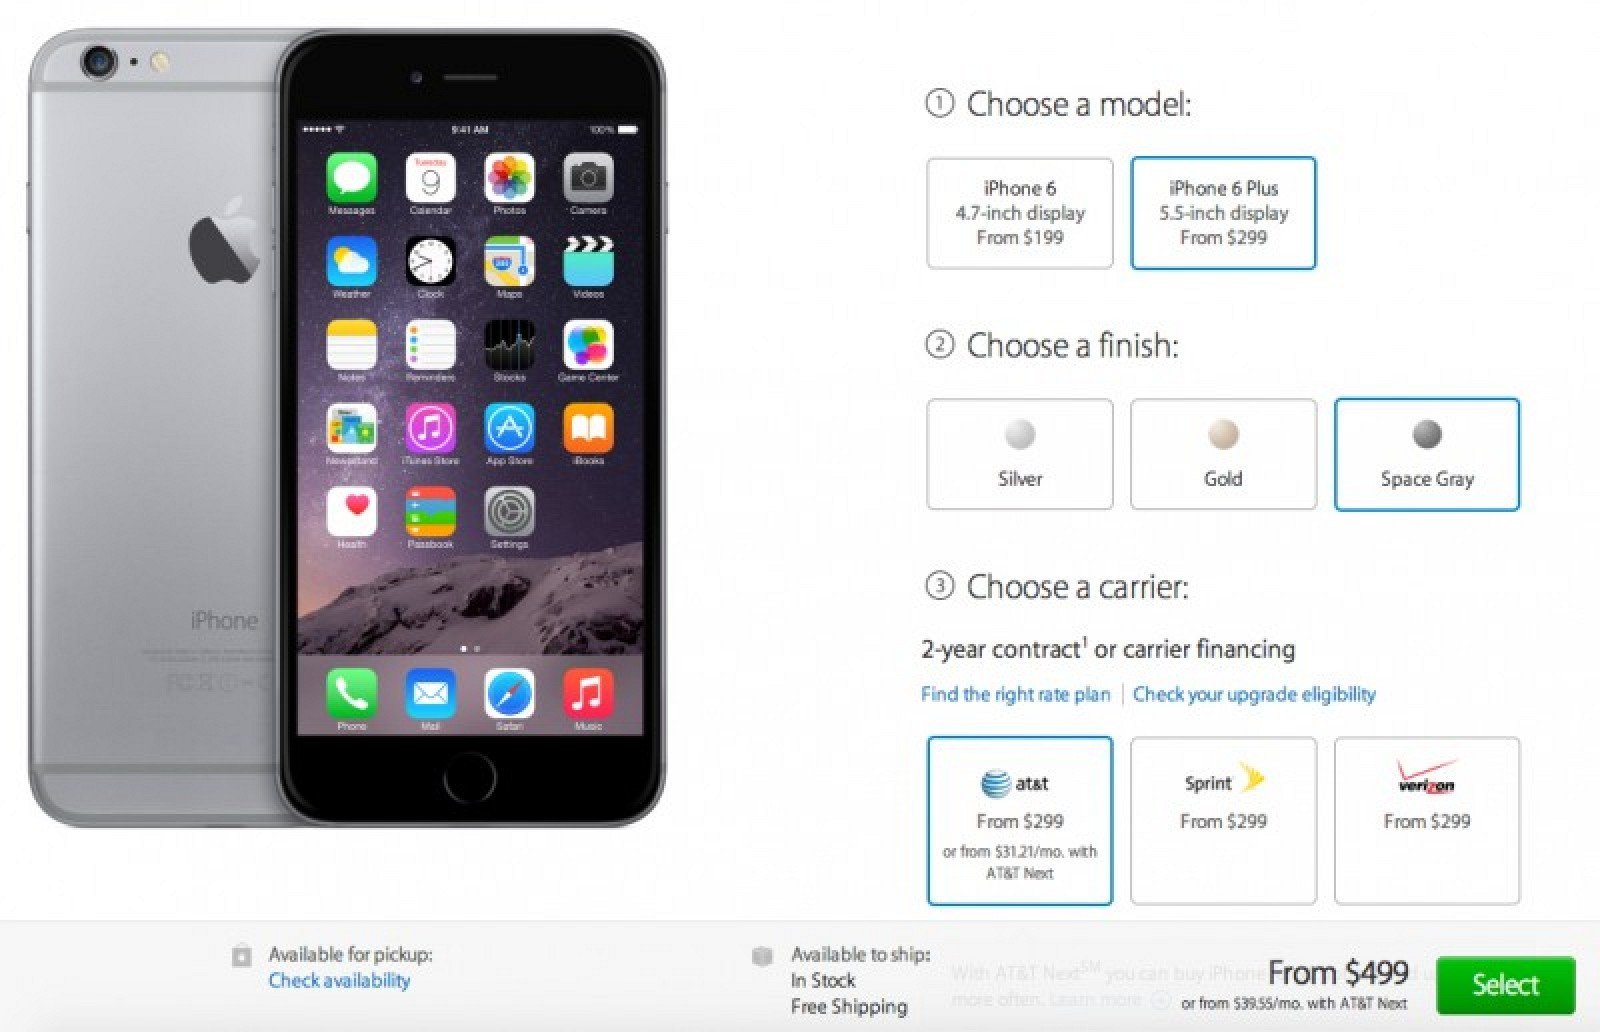 Apples Online Store In US Now Listing All IPhone 6 And Plus Models As Stock